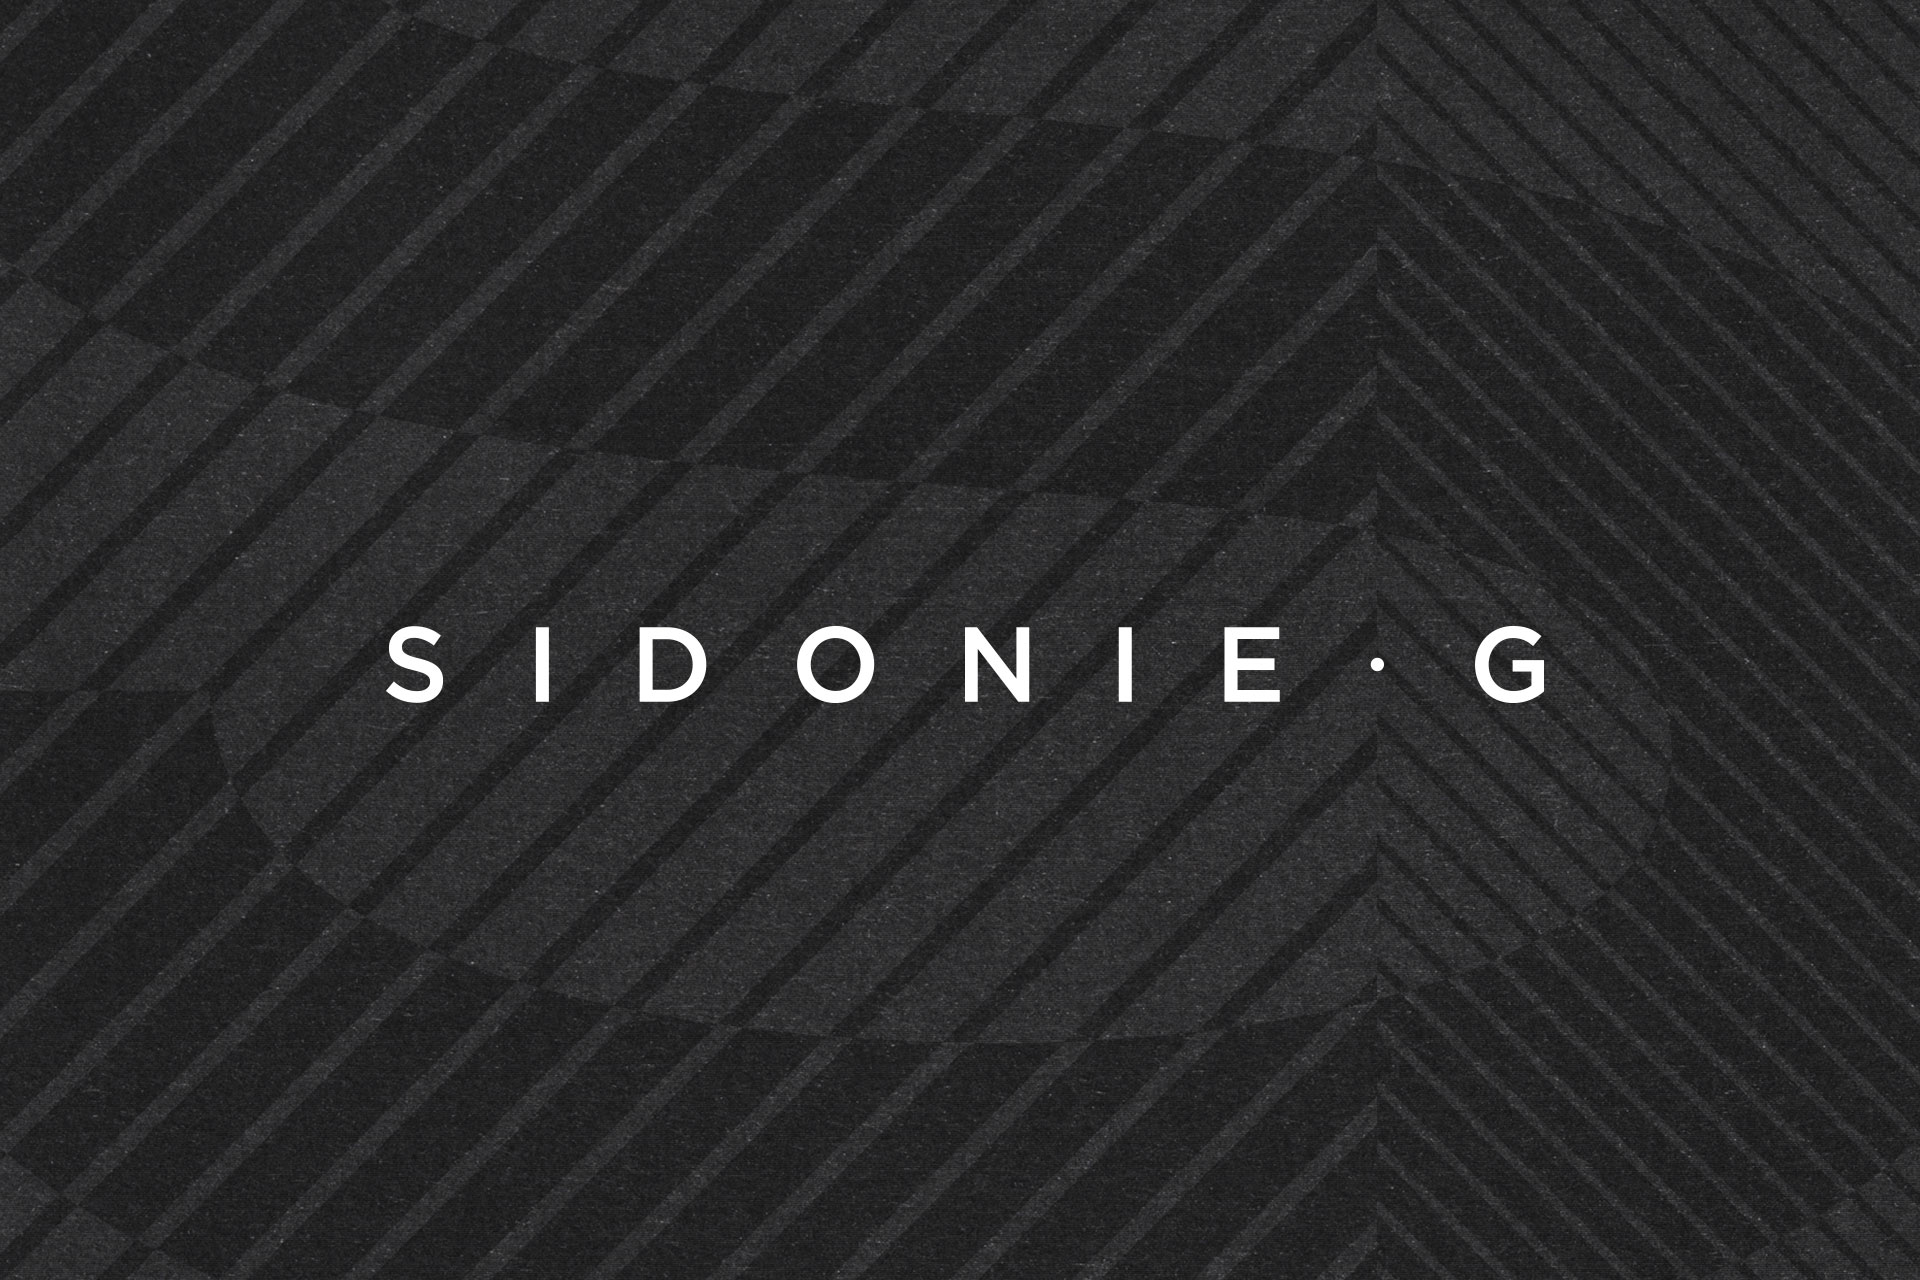 Sidonie G Communications 8